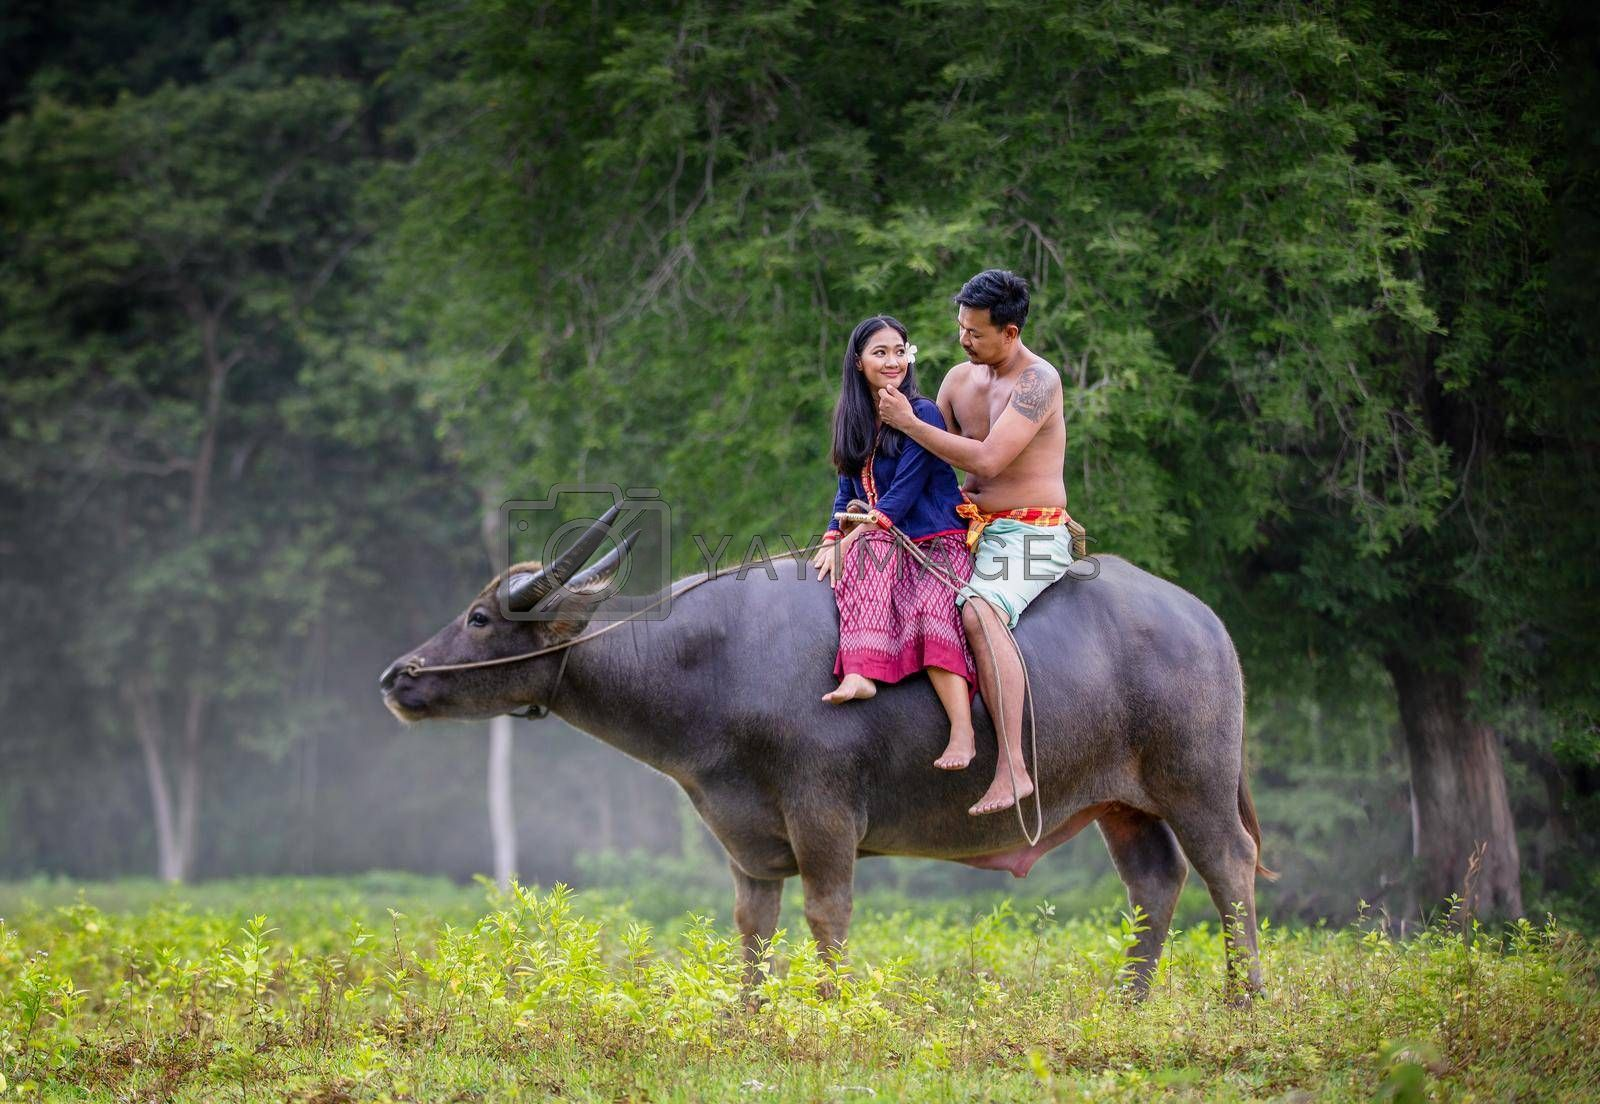 Men and women riding buffalo in rural fields